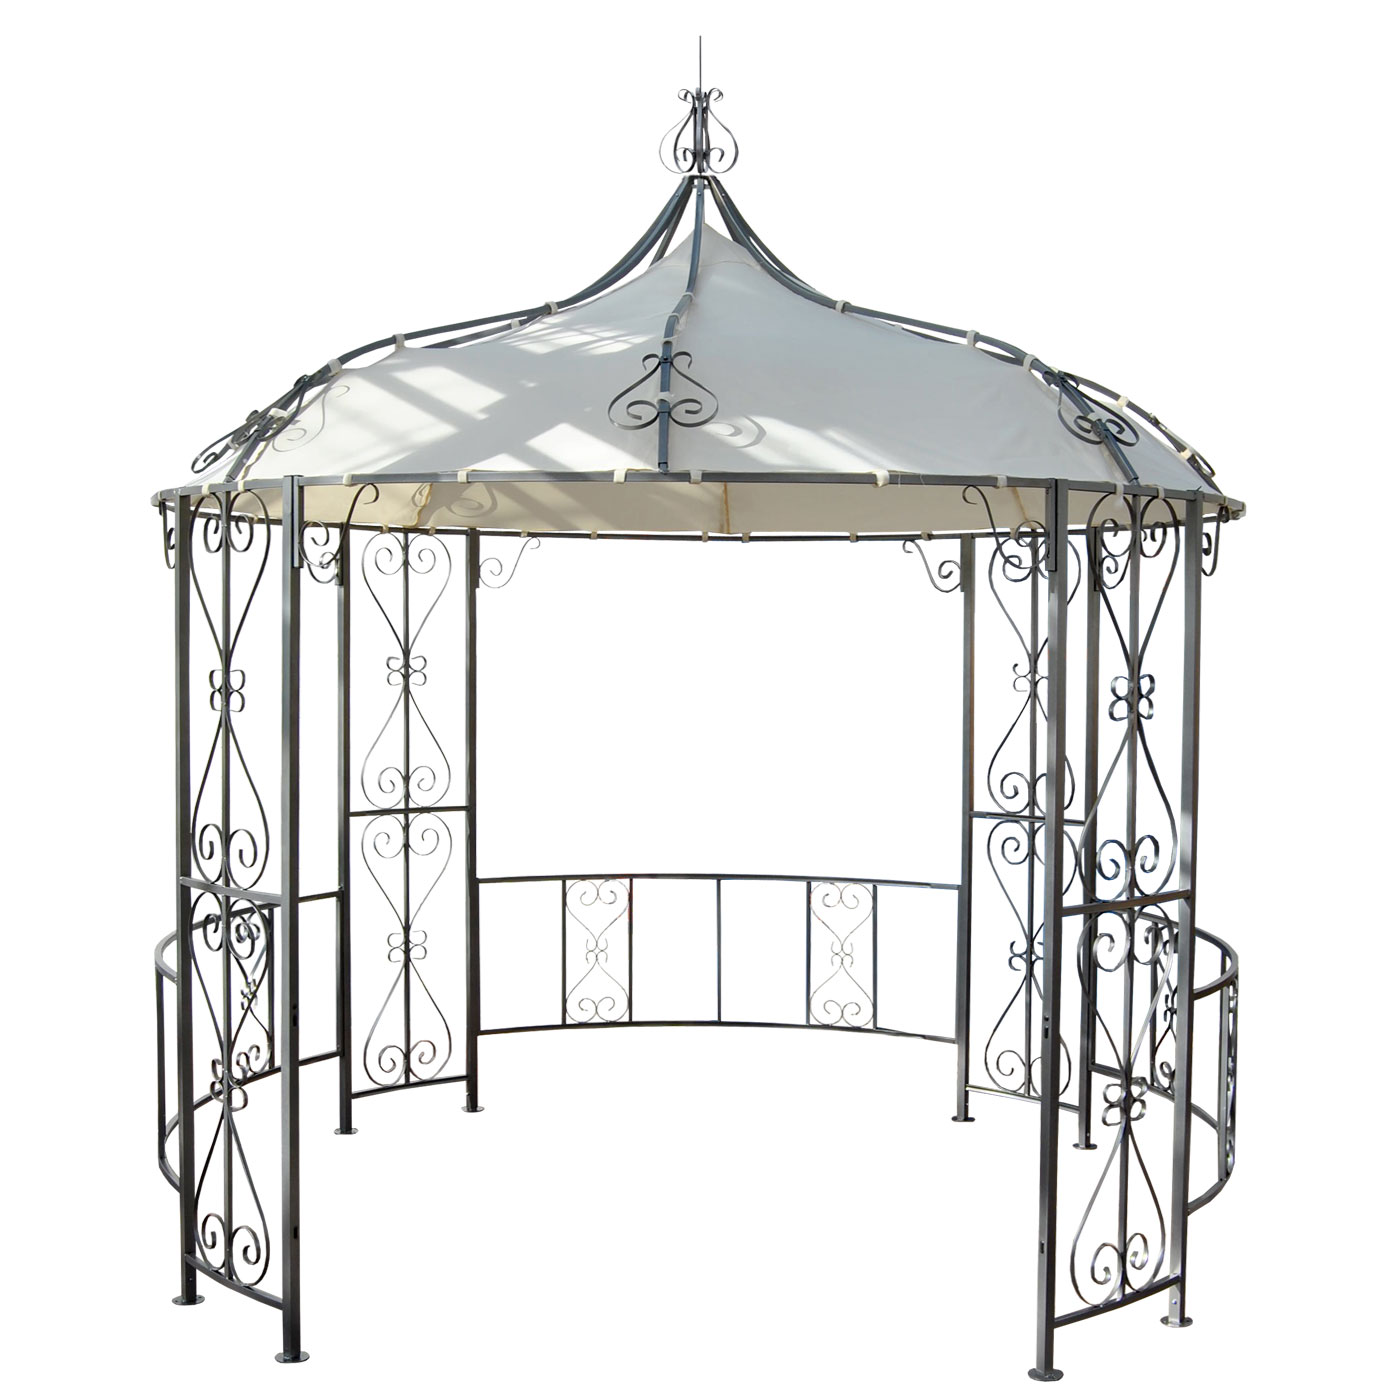 pergola almeria rundpavillon garten pavillon stabiles stahl gestell 3m ebay. Black Bedroom Furniture Sets. Home Design Ideas